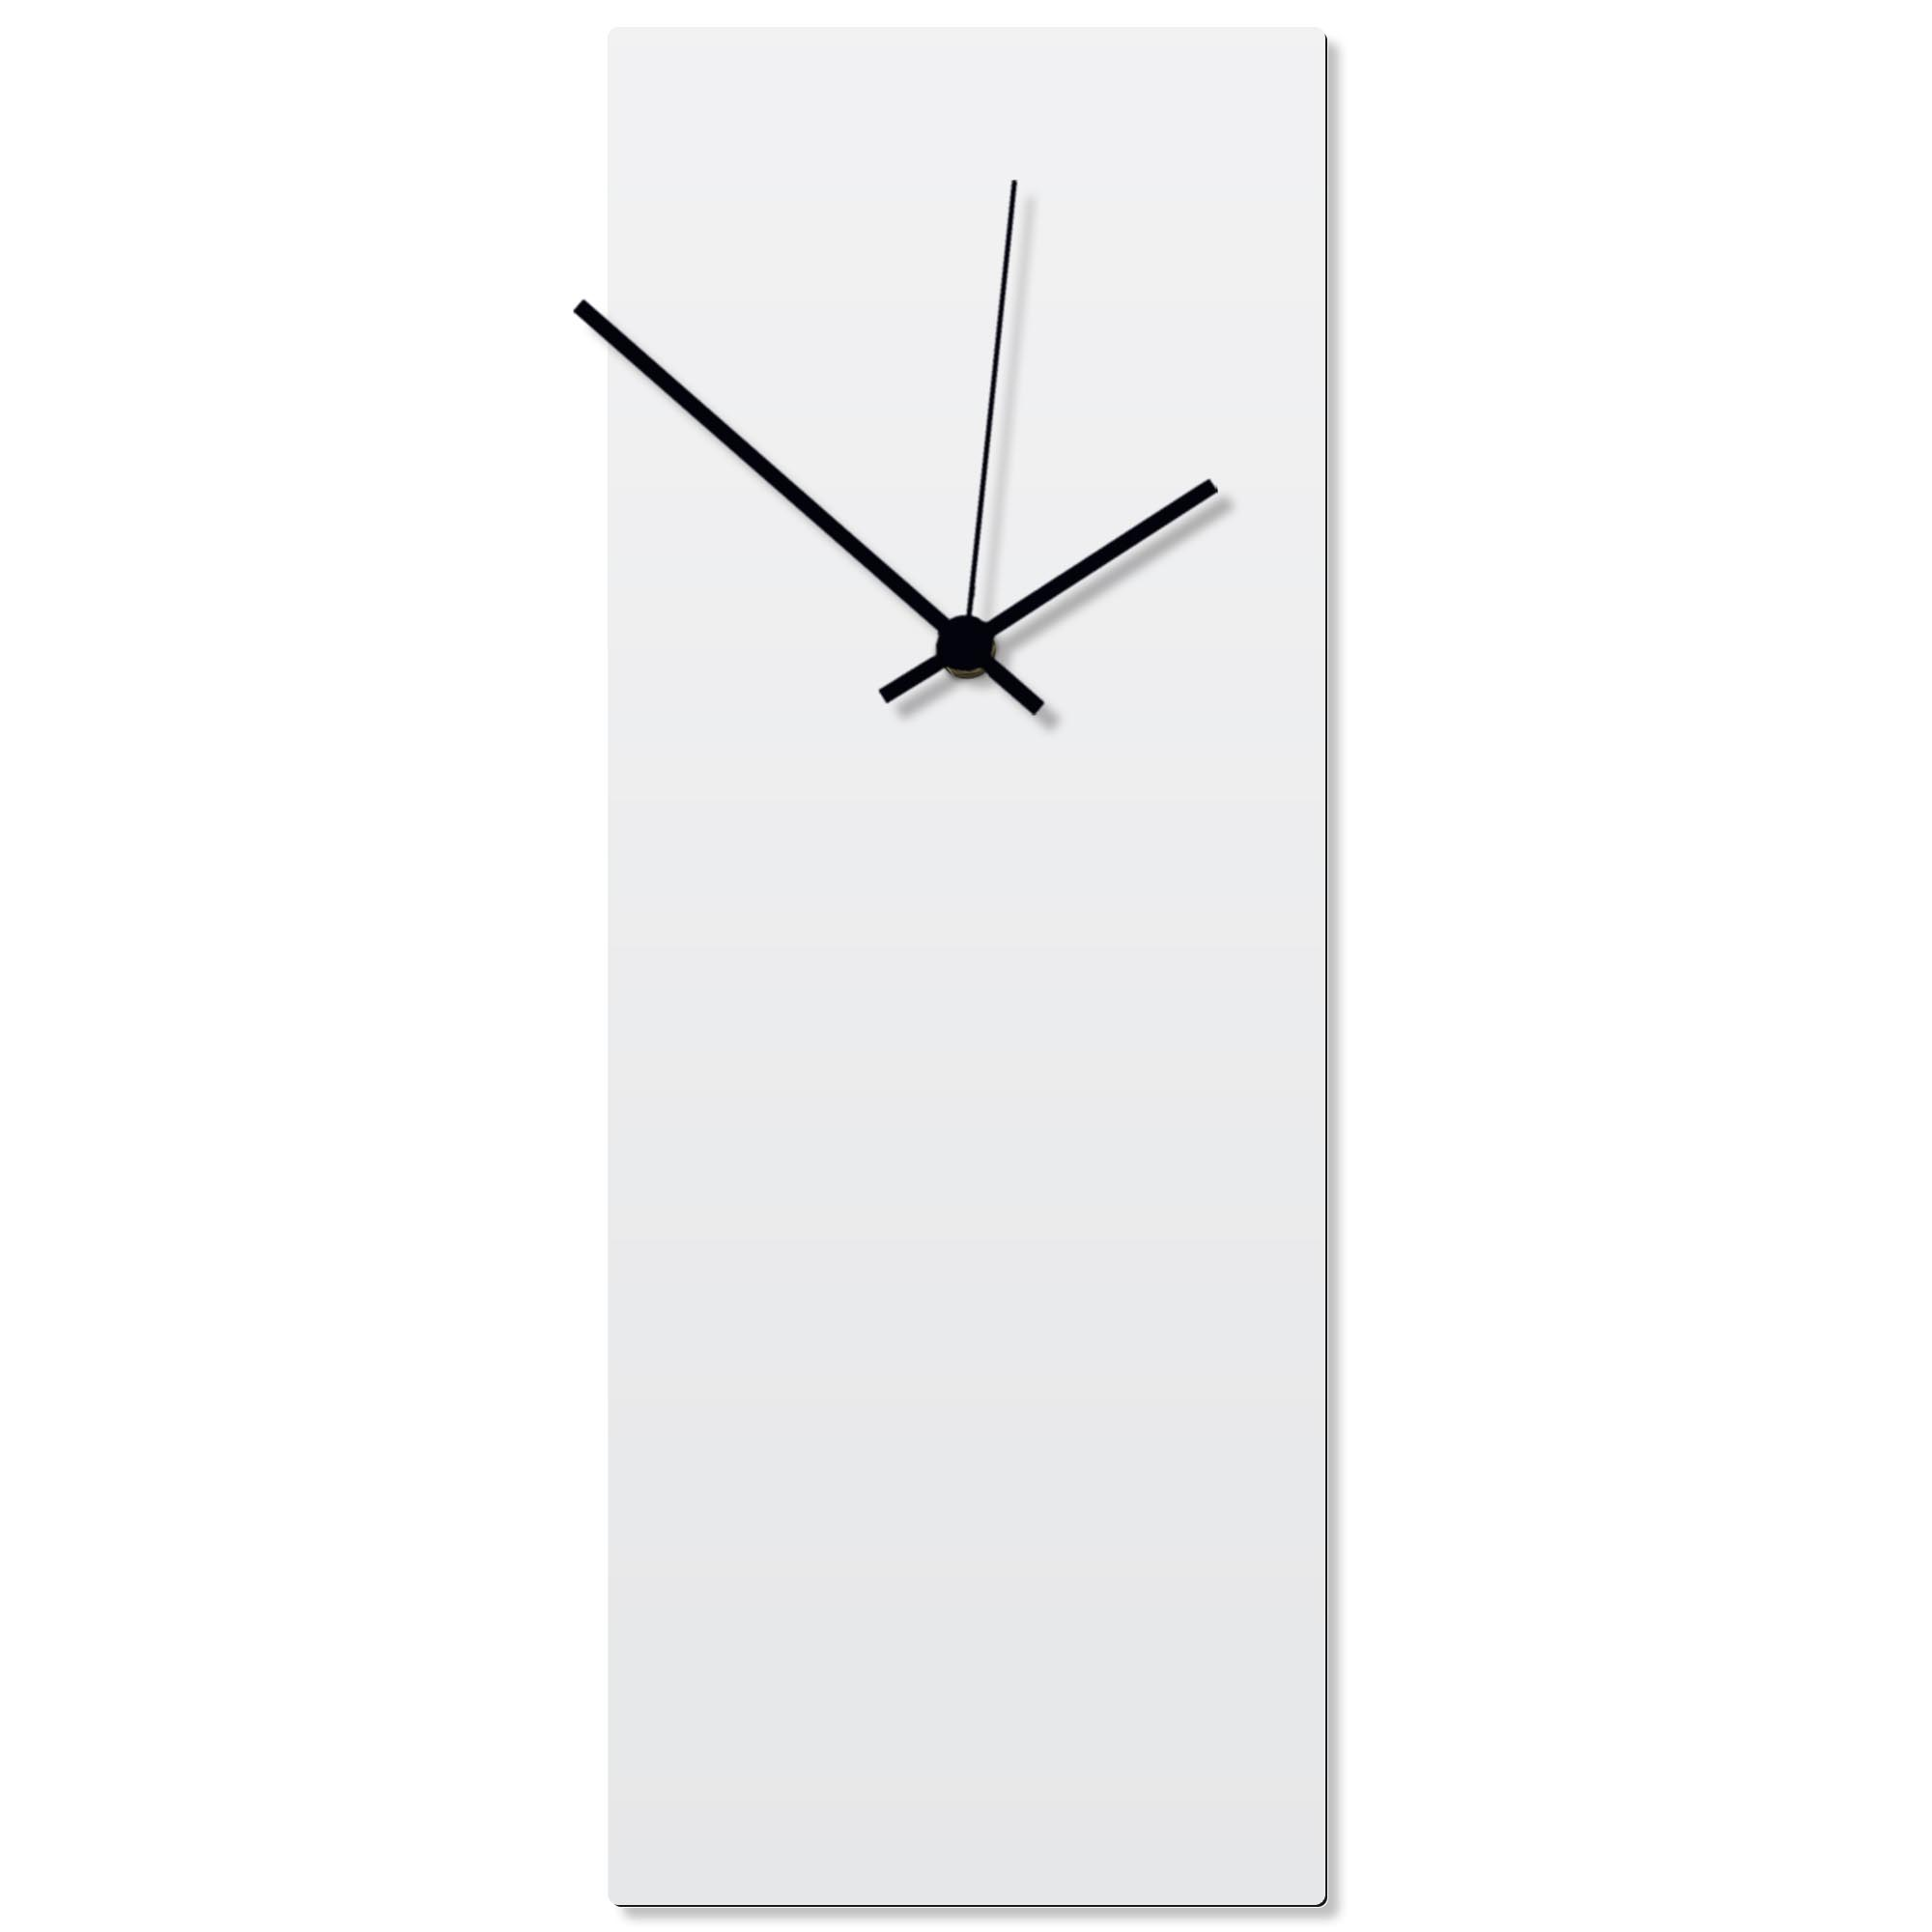 Whiteout Black Clock Large 8.25x22in. Aluminum Polymetal